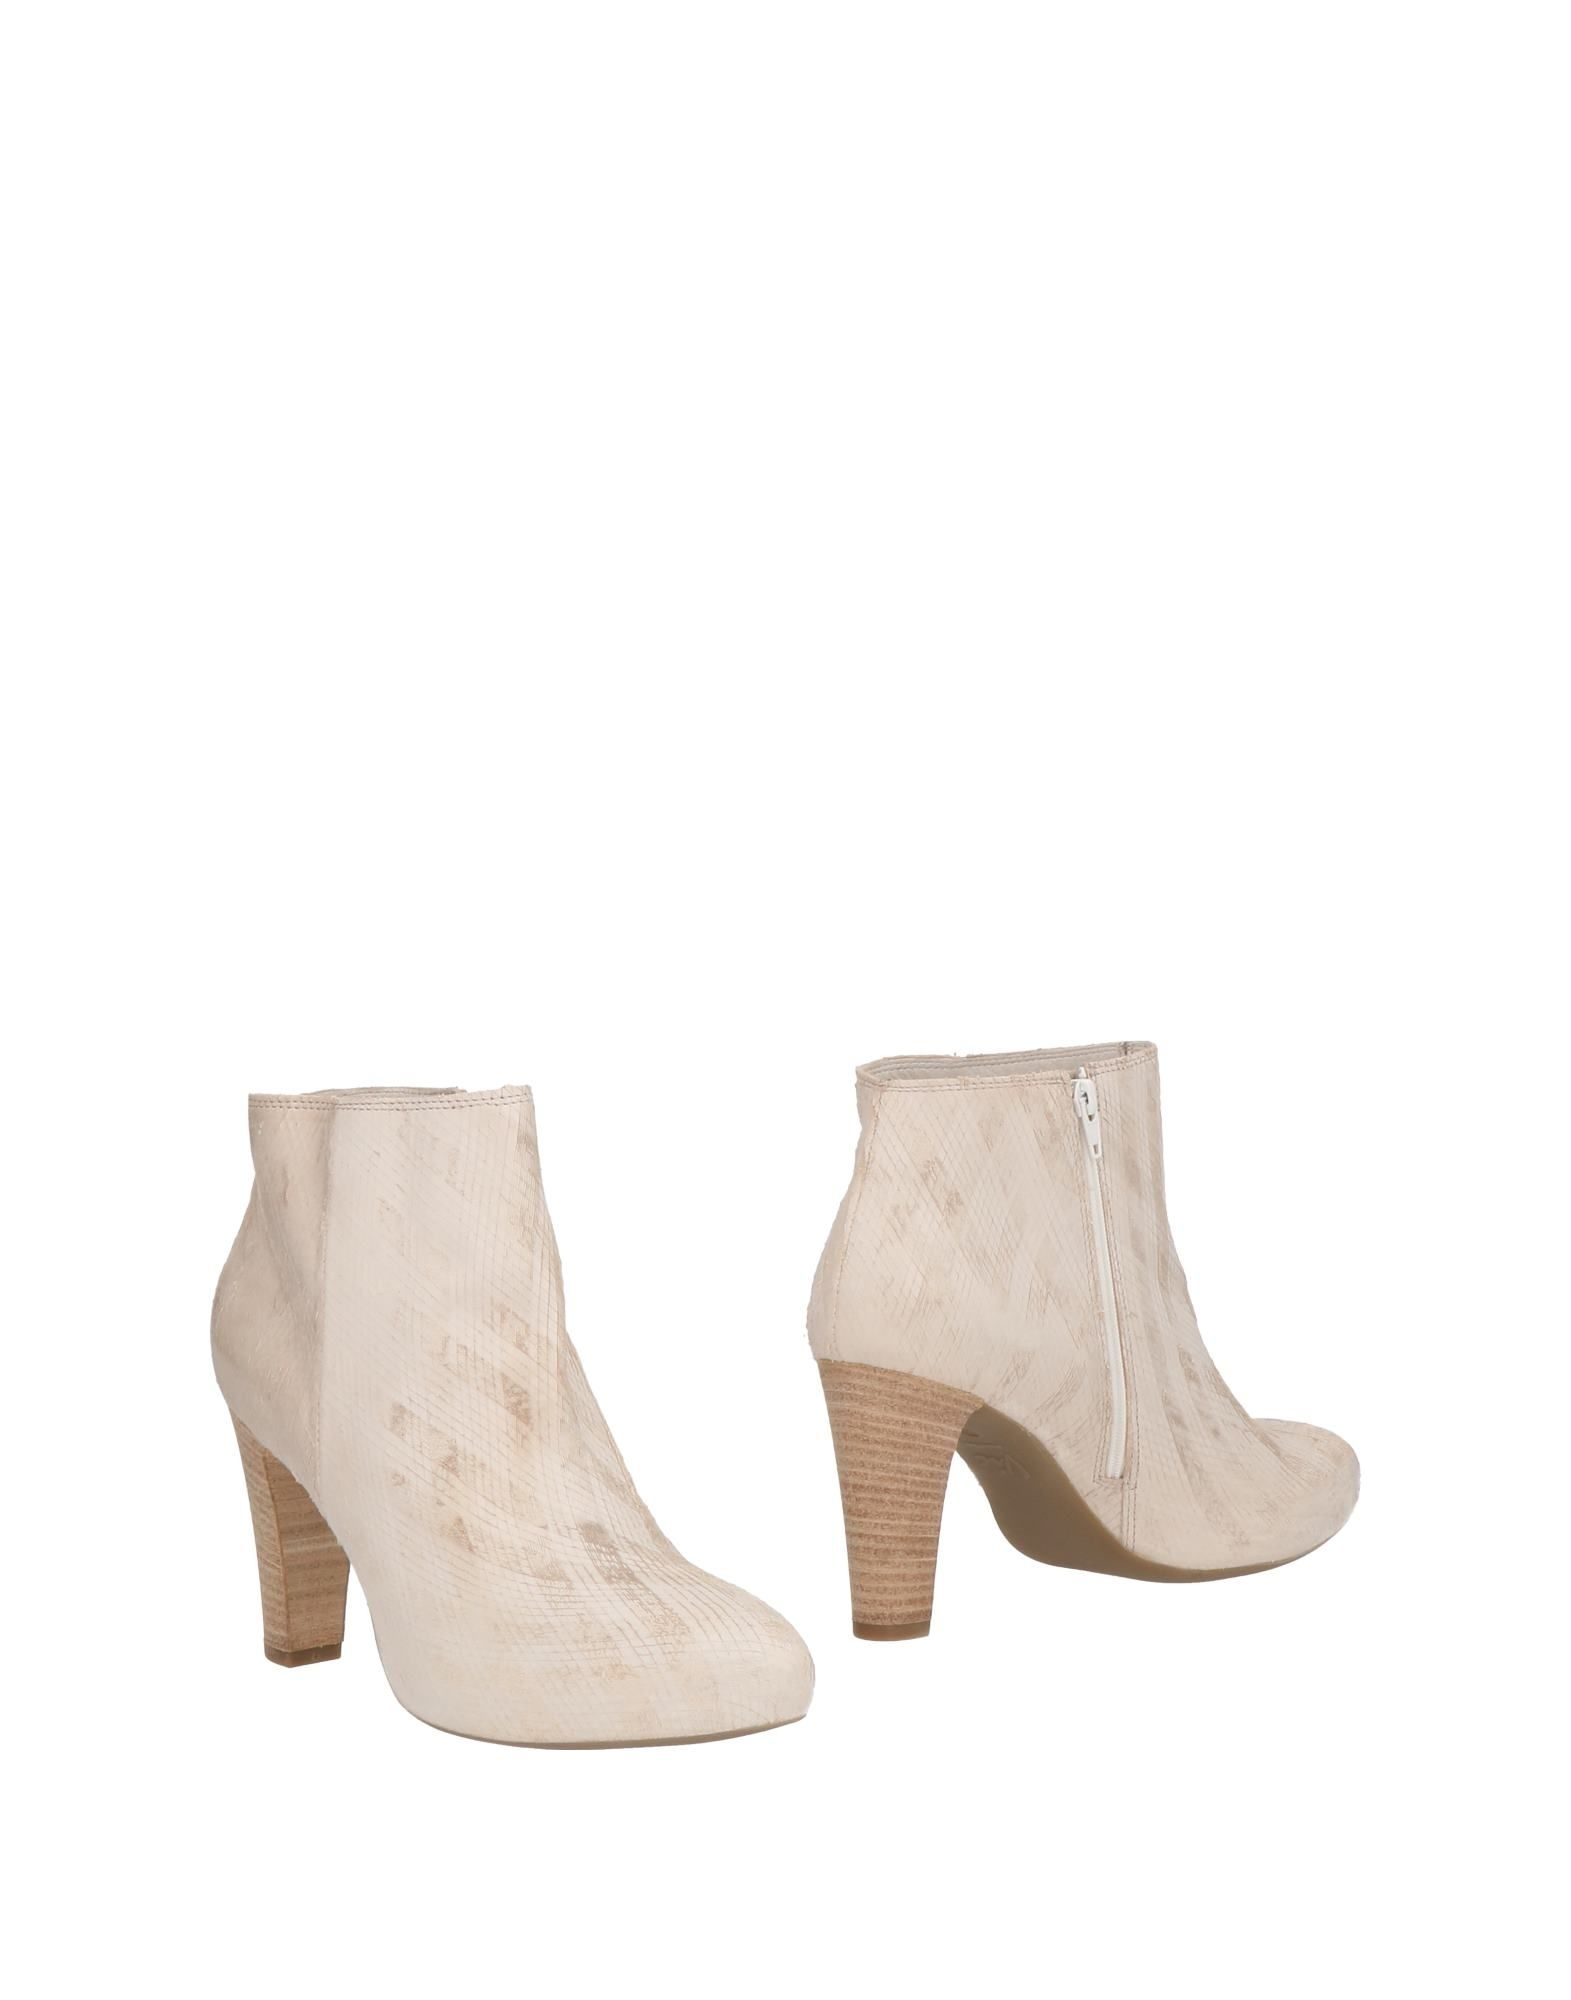 VIC Ankle Boot in Ivory